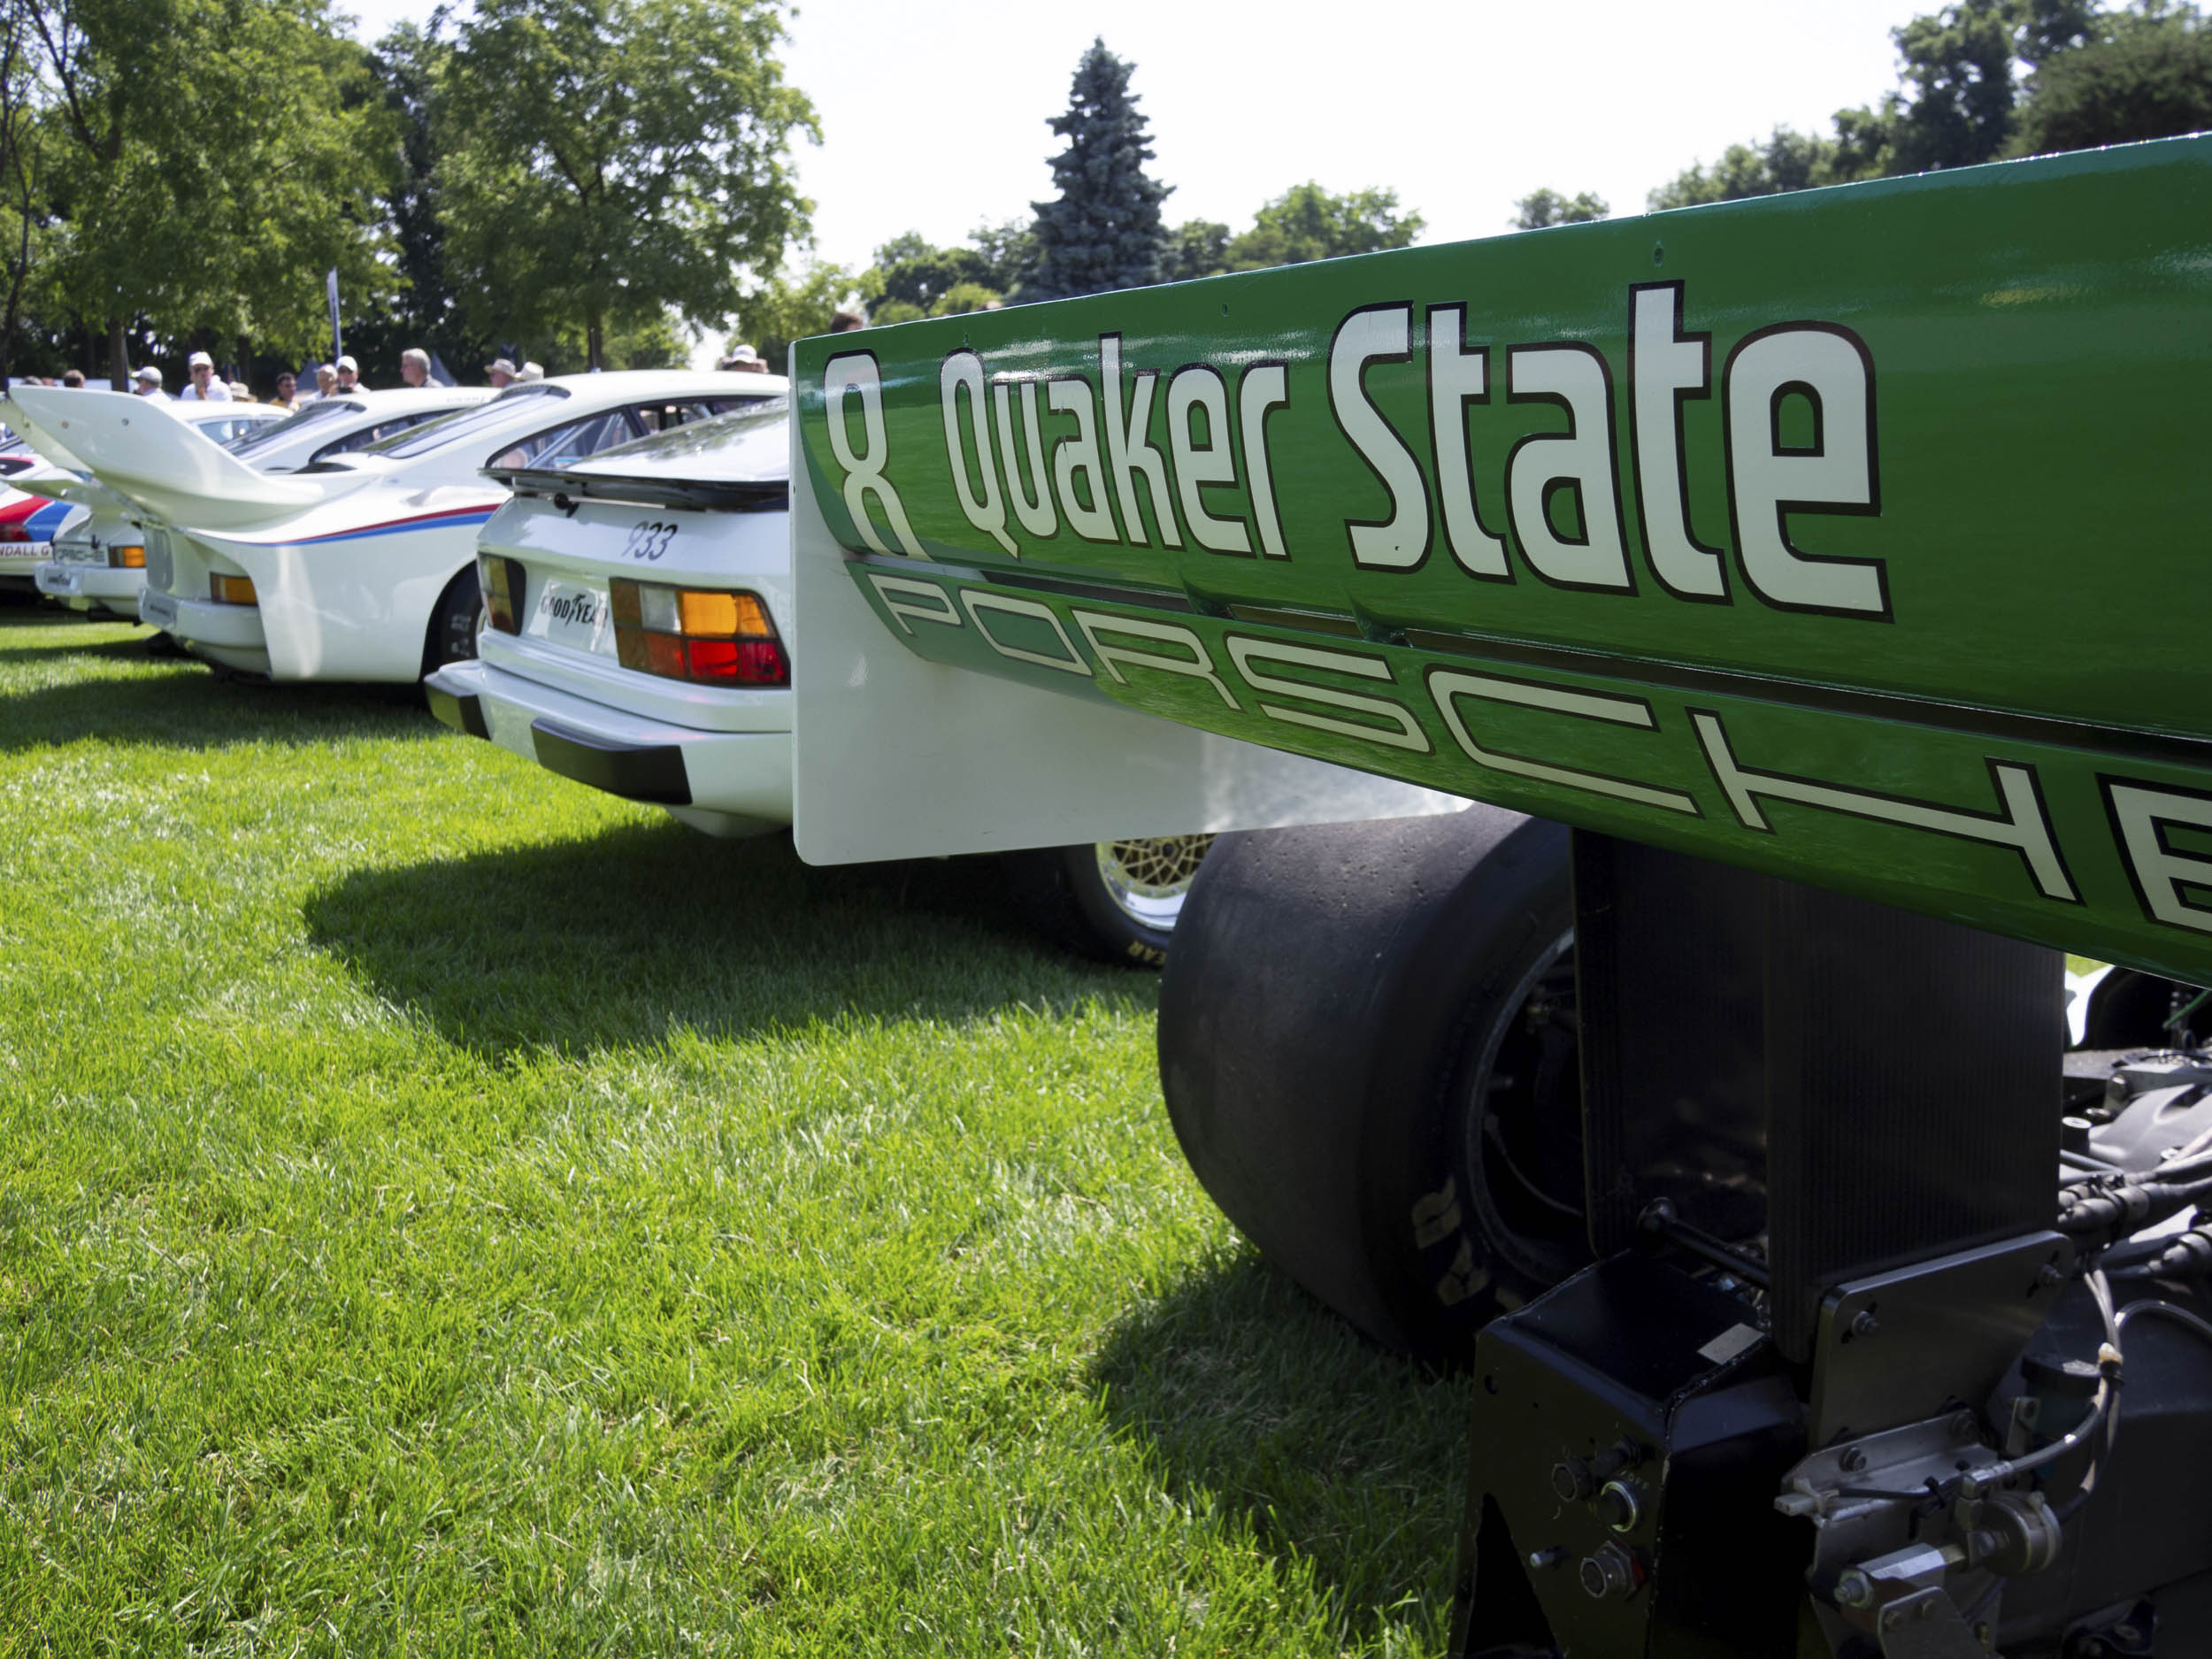 1989 Porsche Indy - Quaker State by March rear wing